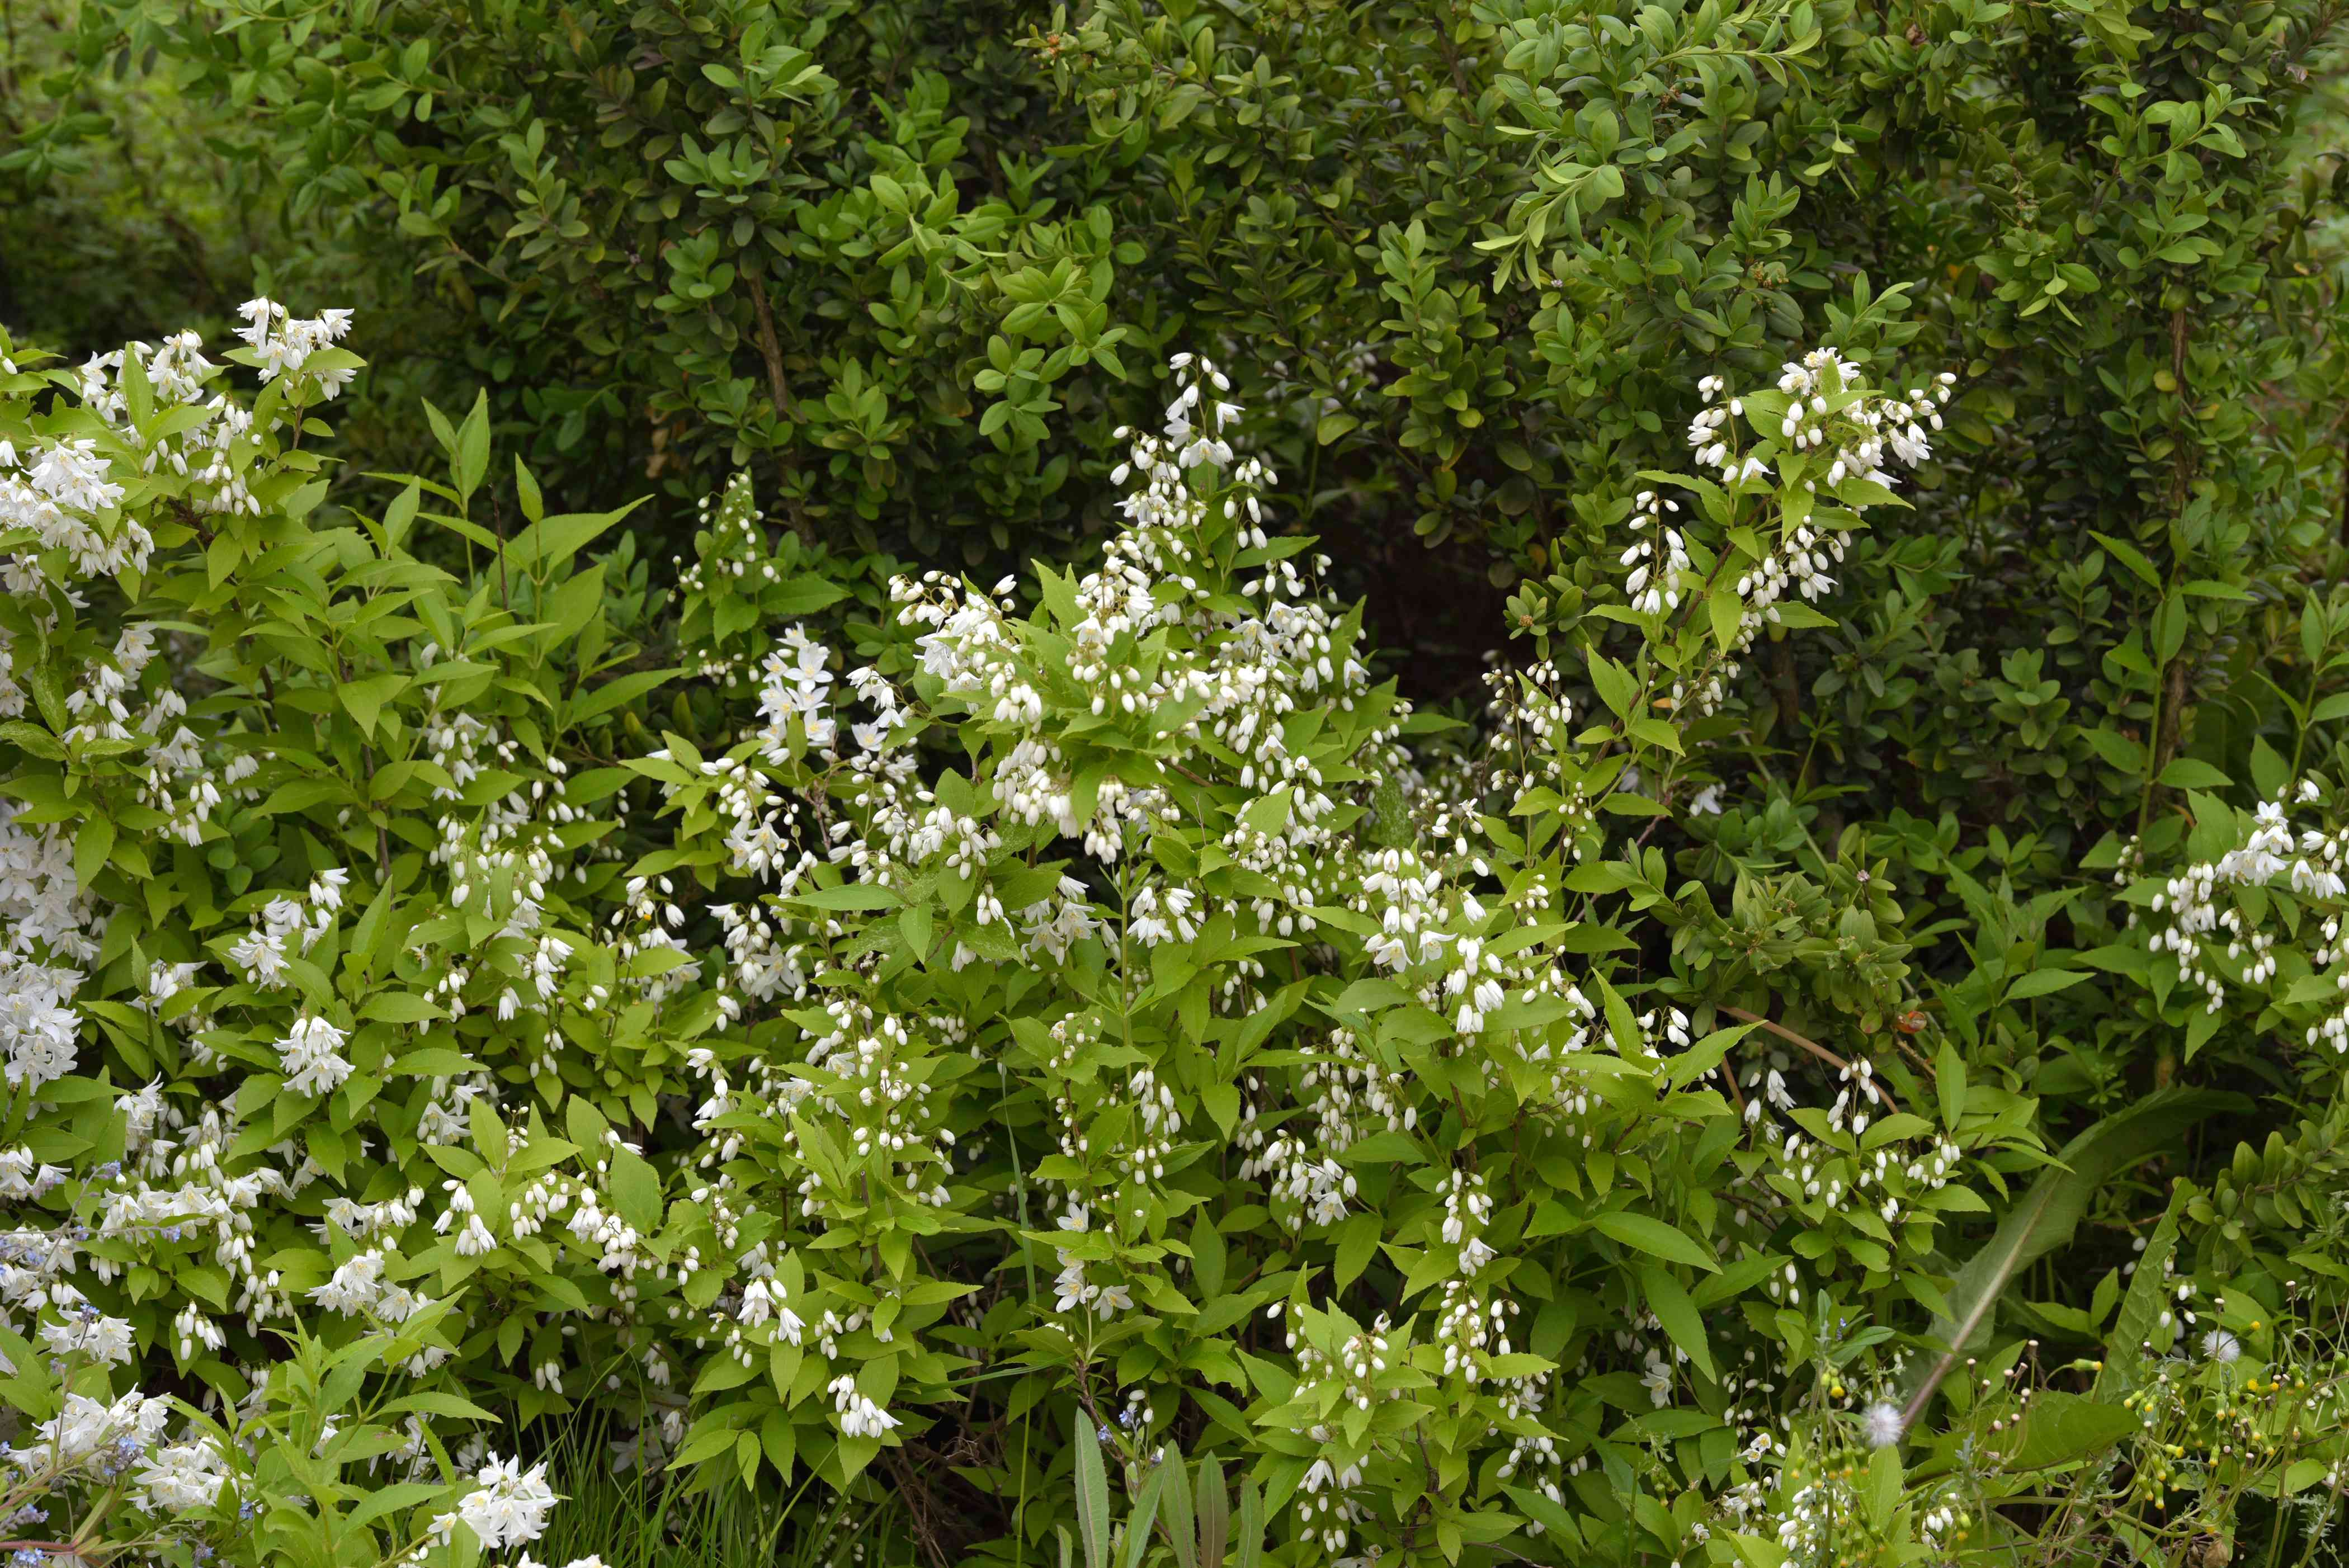 Dwarf Deutzia 'Nikko' shrub with tall branches and arching stems with small white flower blooms